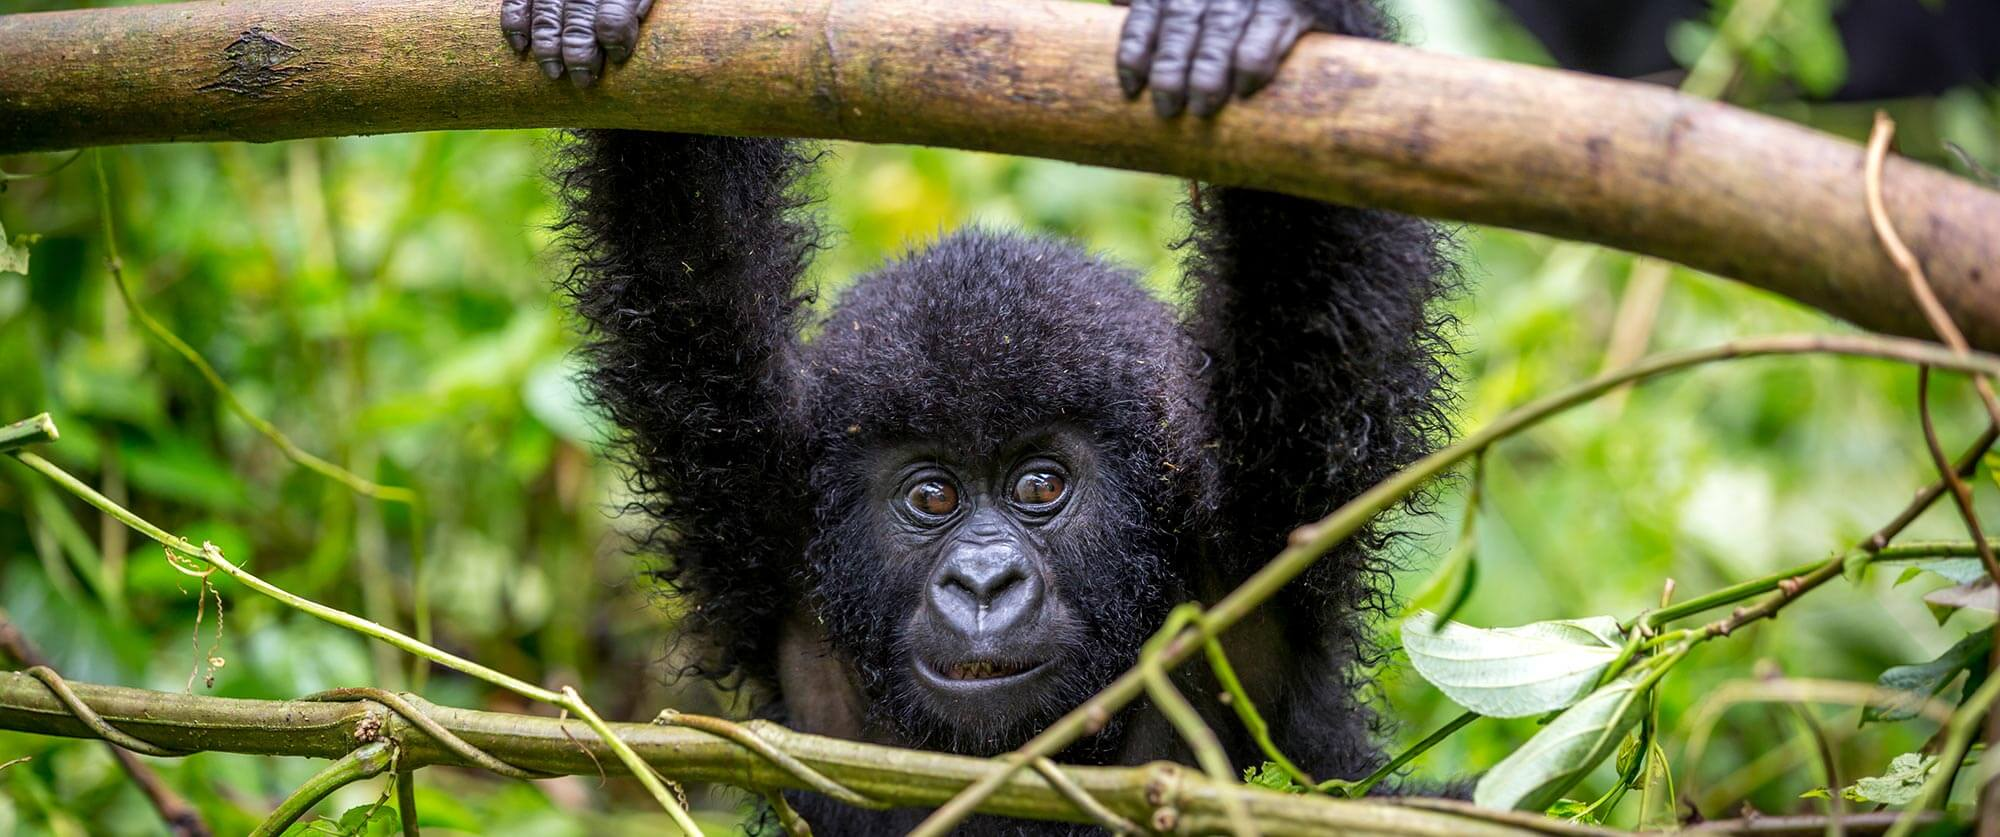 Baby Gorilla in Bwindi Impenetrable Forest - Ugandan Adventure: Gorilla Safari Tour